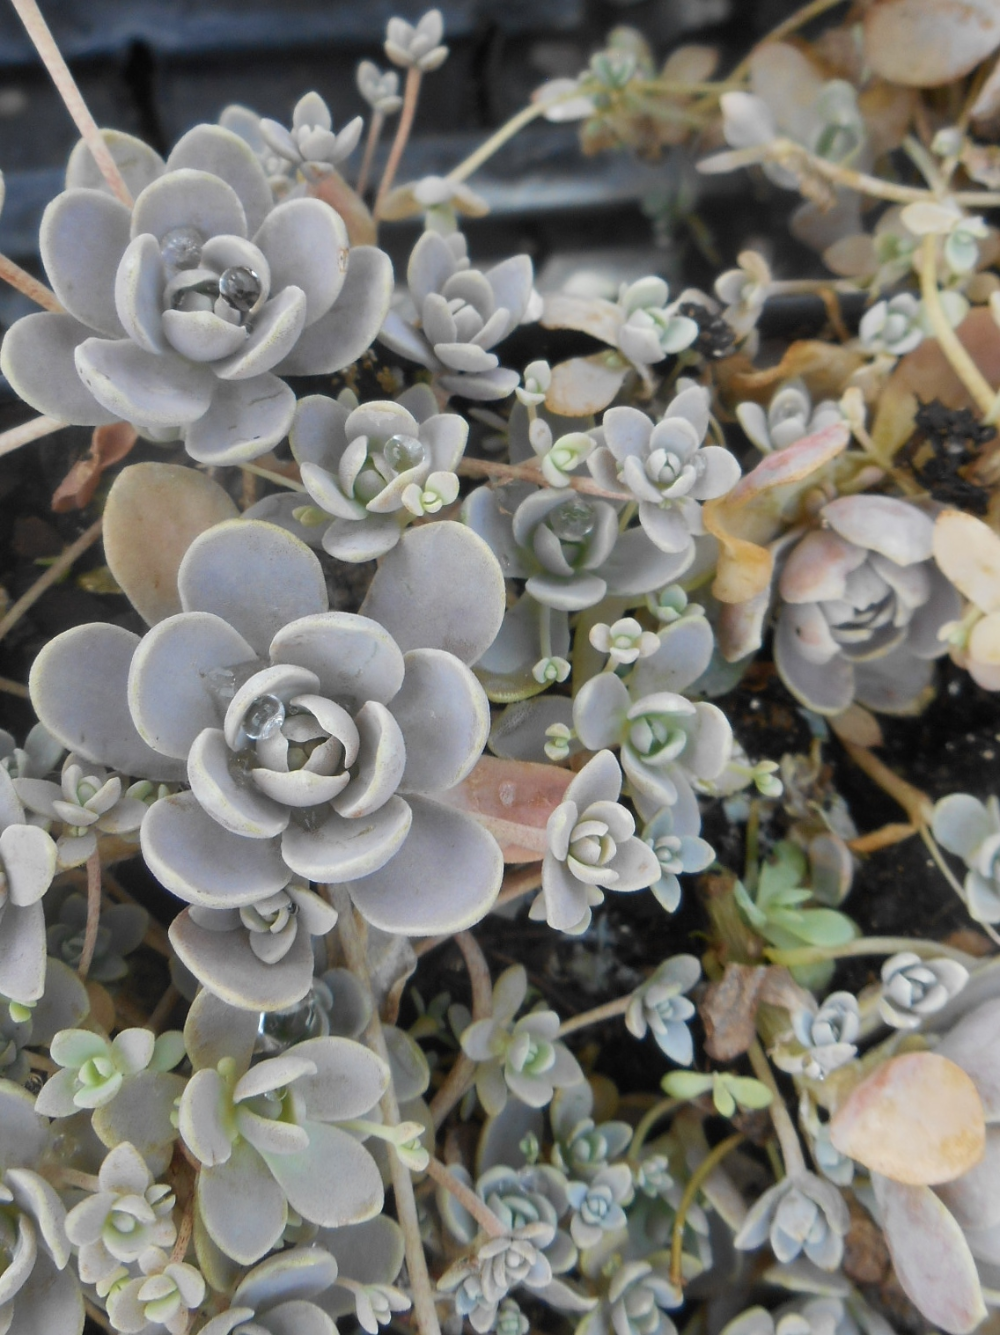 Orostachys Iwarenge Chinese Dunce Cap In China Called Wa Song Shu Z 5 10 Heritage Flower Farm Flower Farm Flower Spike Plant Goals